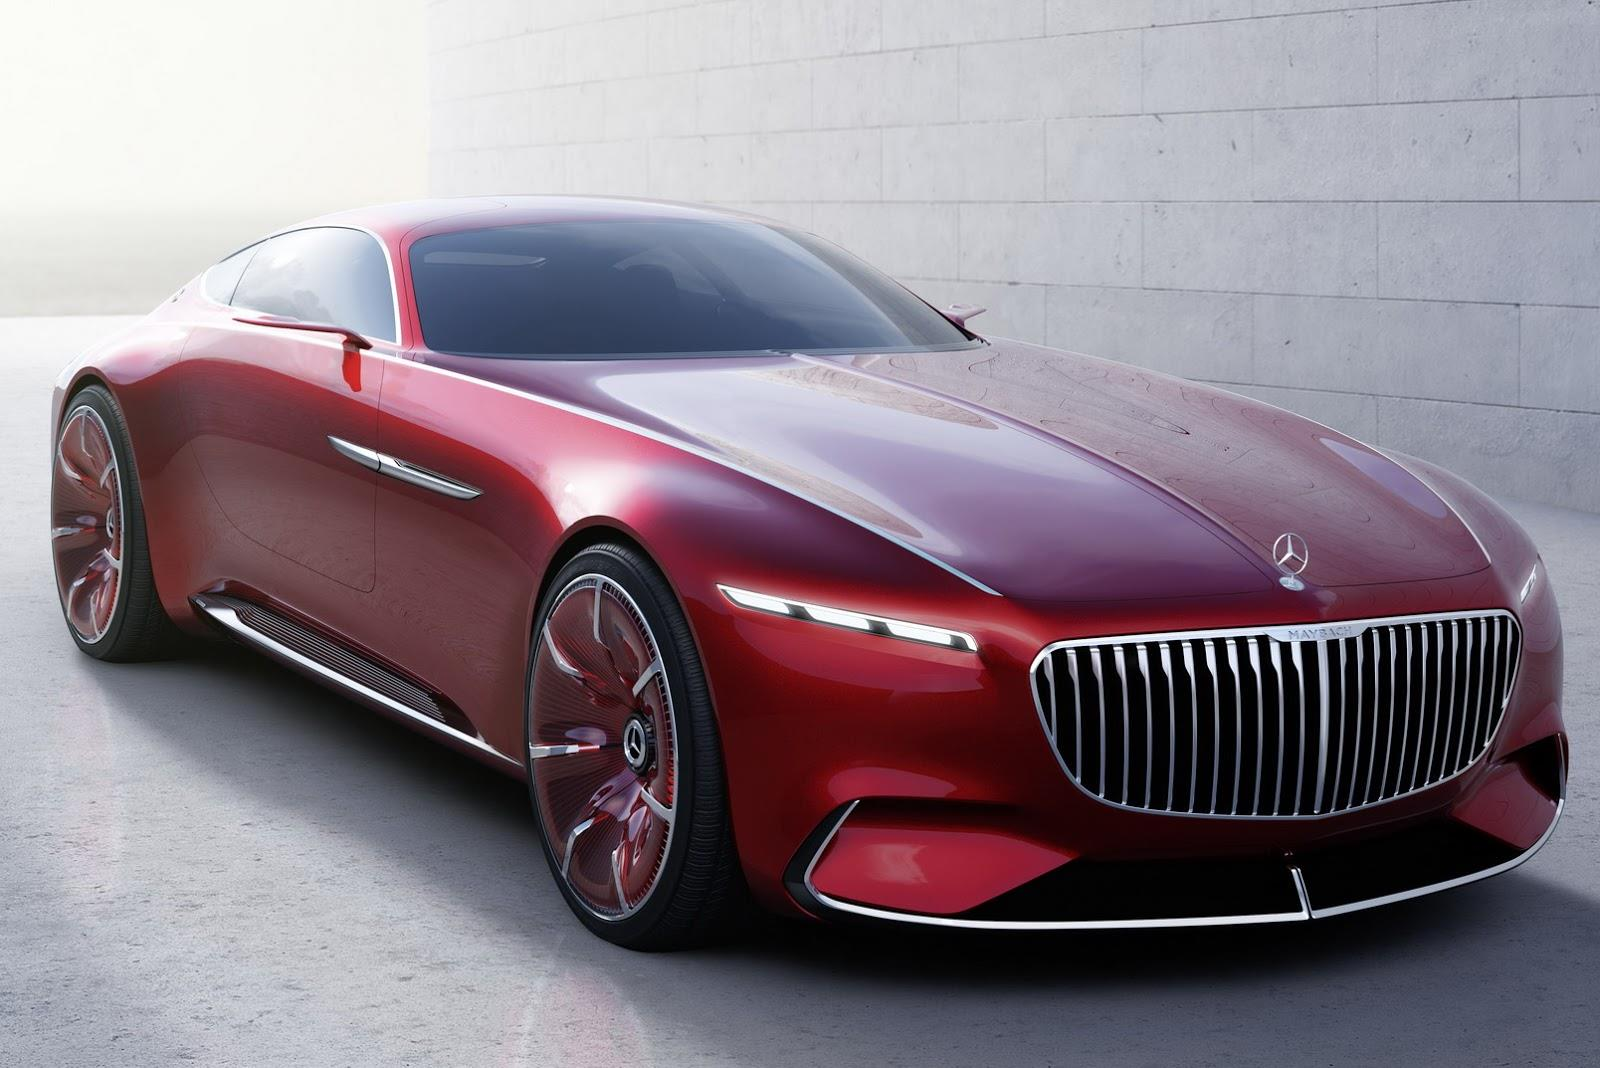 Vision Mercedes-Maybach 6 concept photo gallery